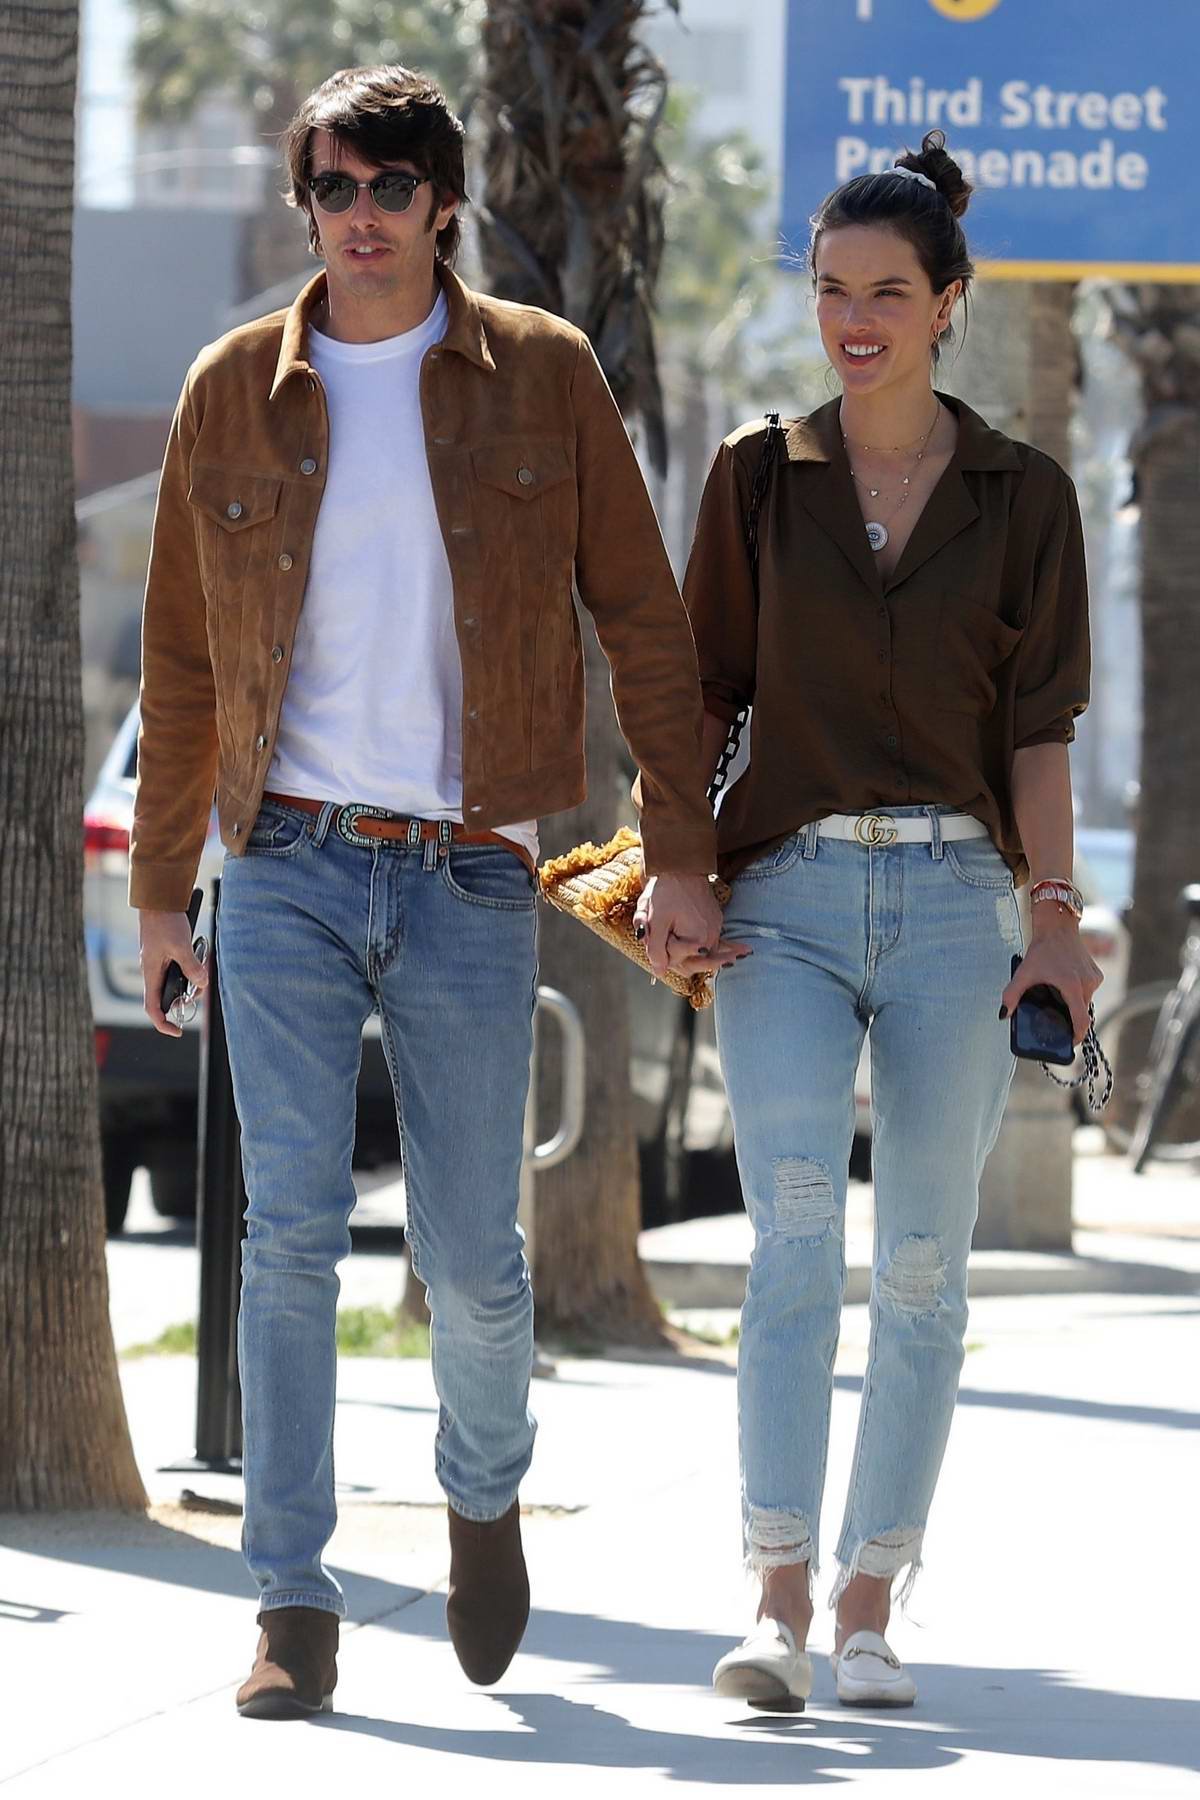 Alessandra Ambrosio rocks a brown silk shirt and ripped jeans while out for lunch with Nicolo Oddi in Los Angeles